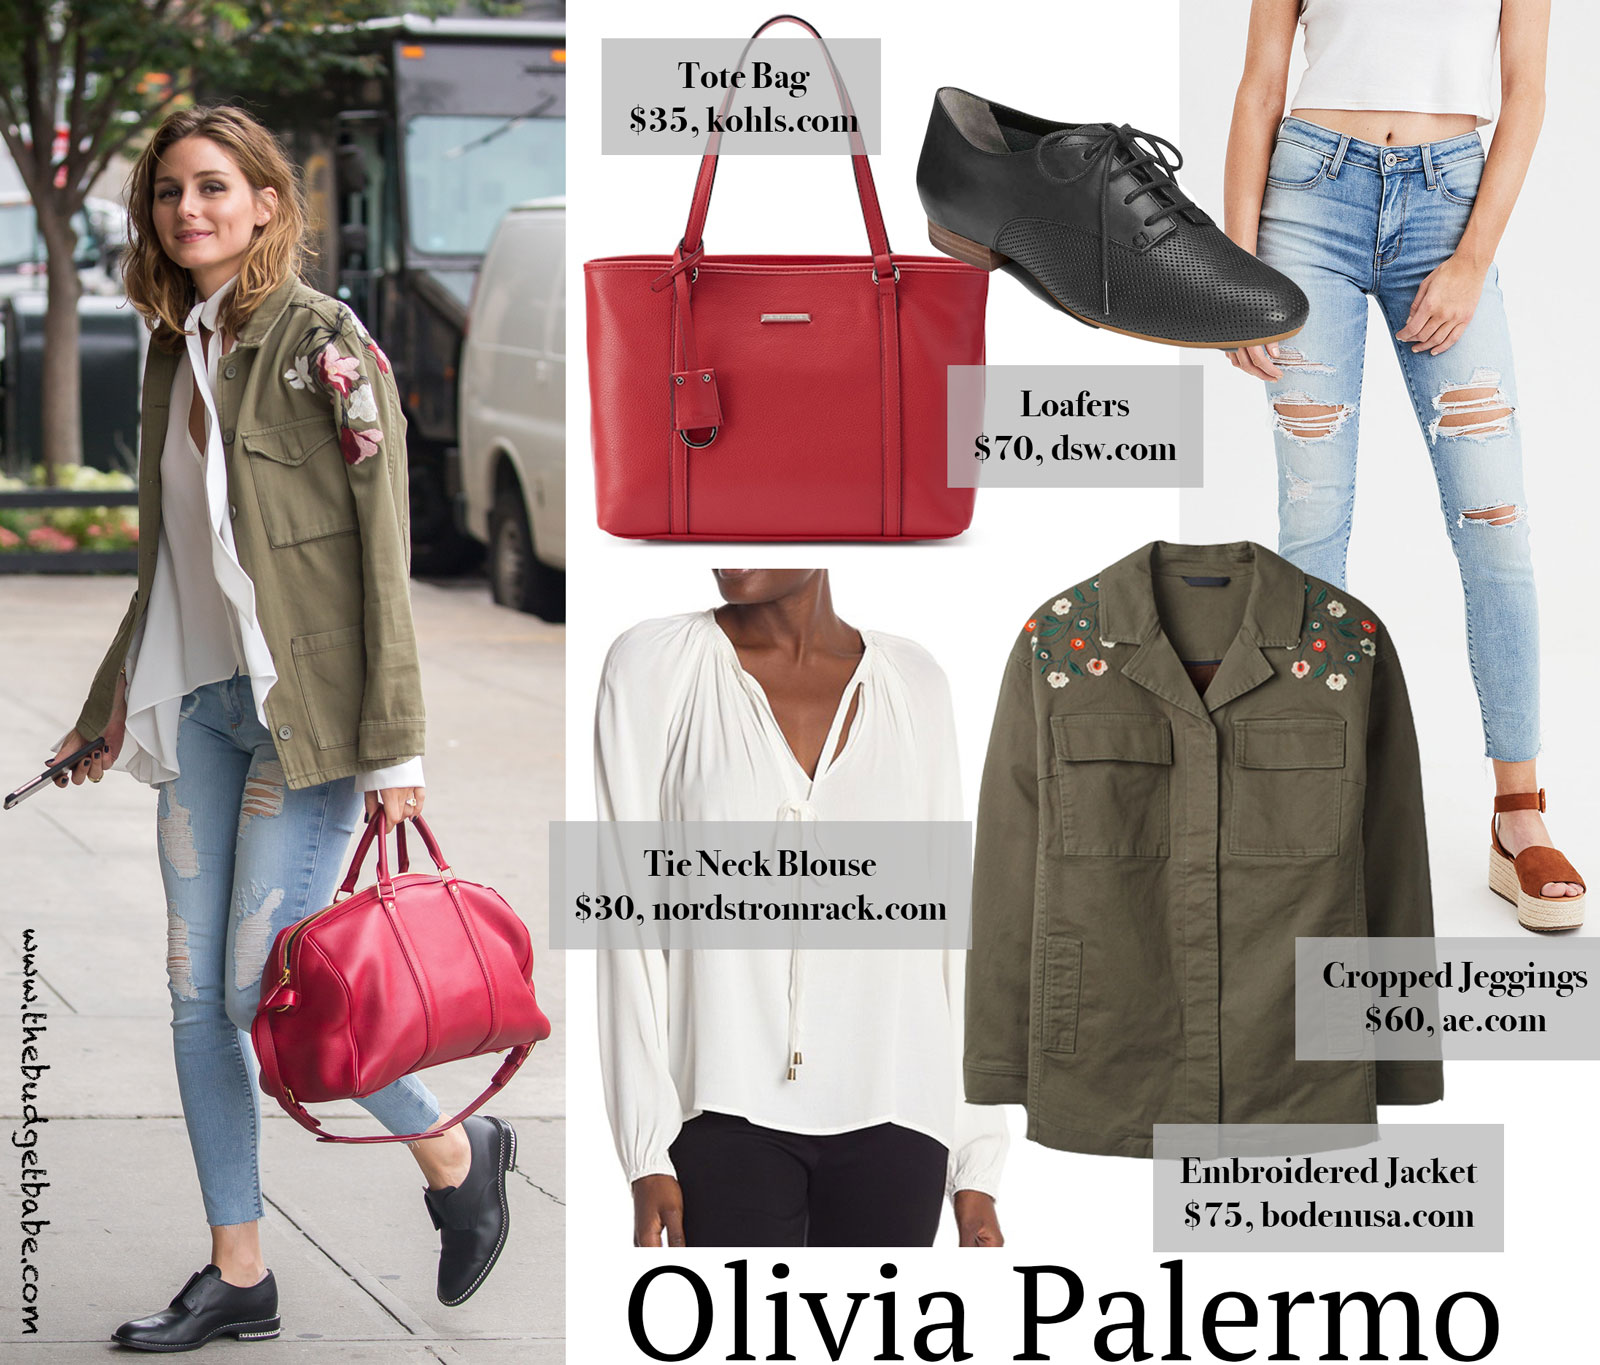 Olivia Palermo Embroidered Jacket Look for Less